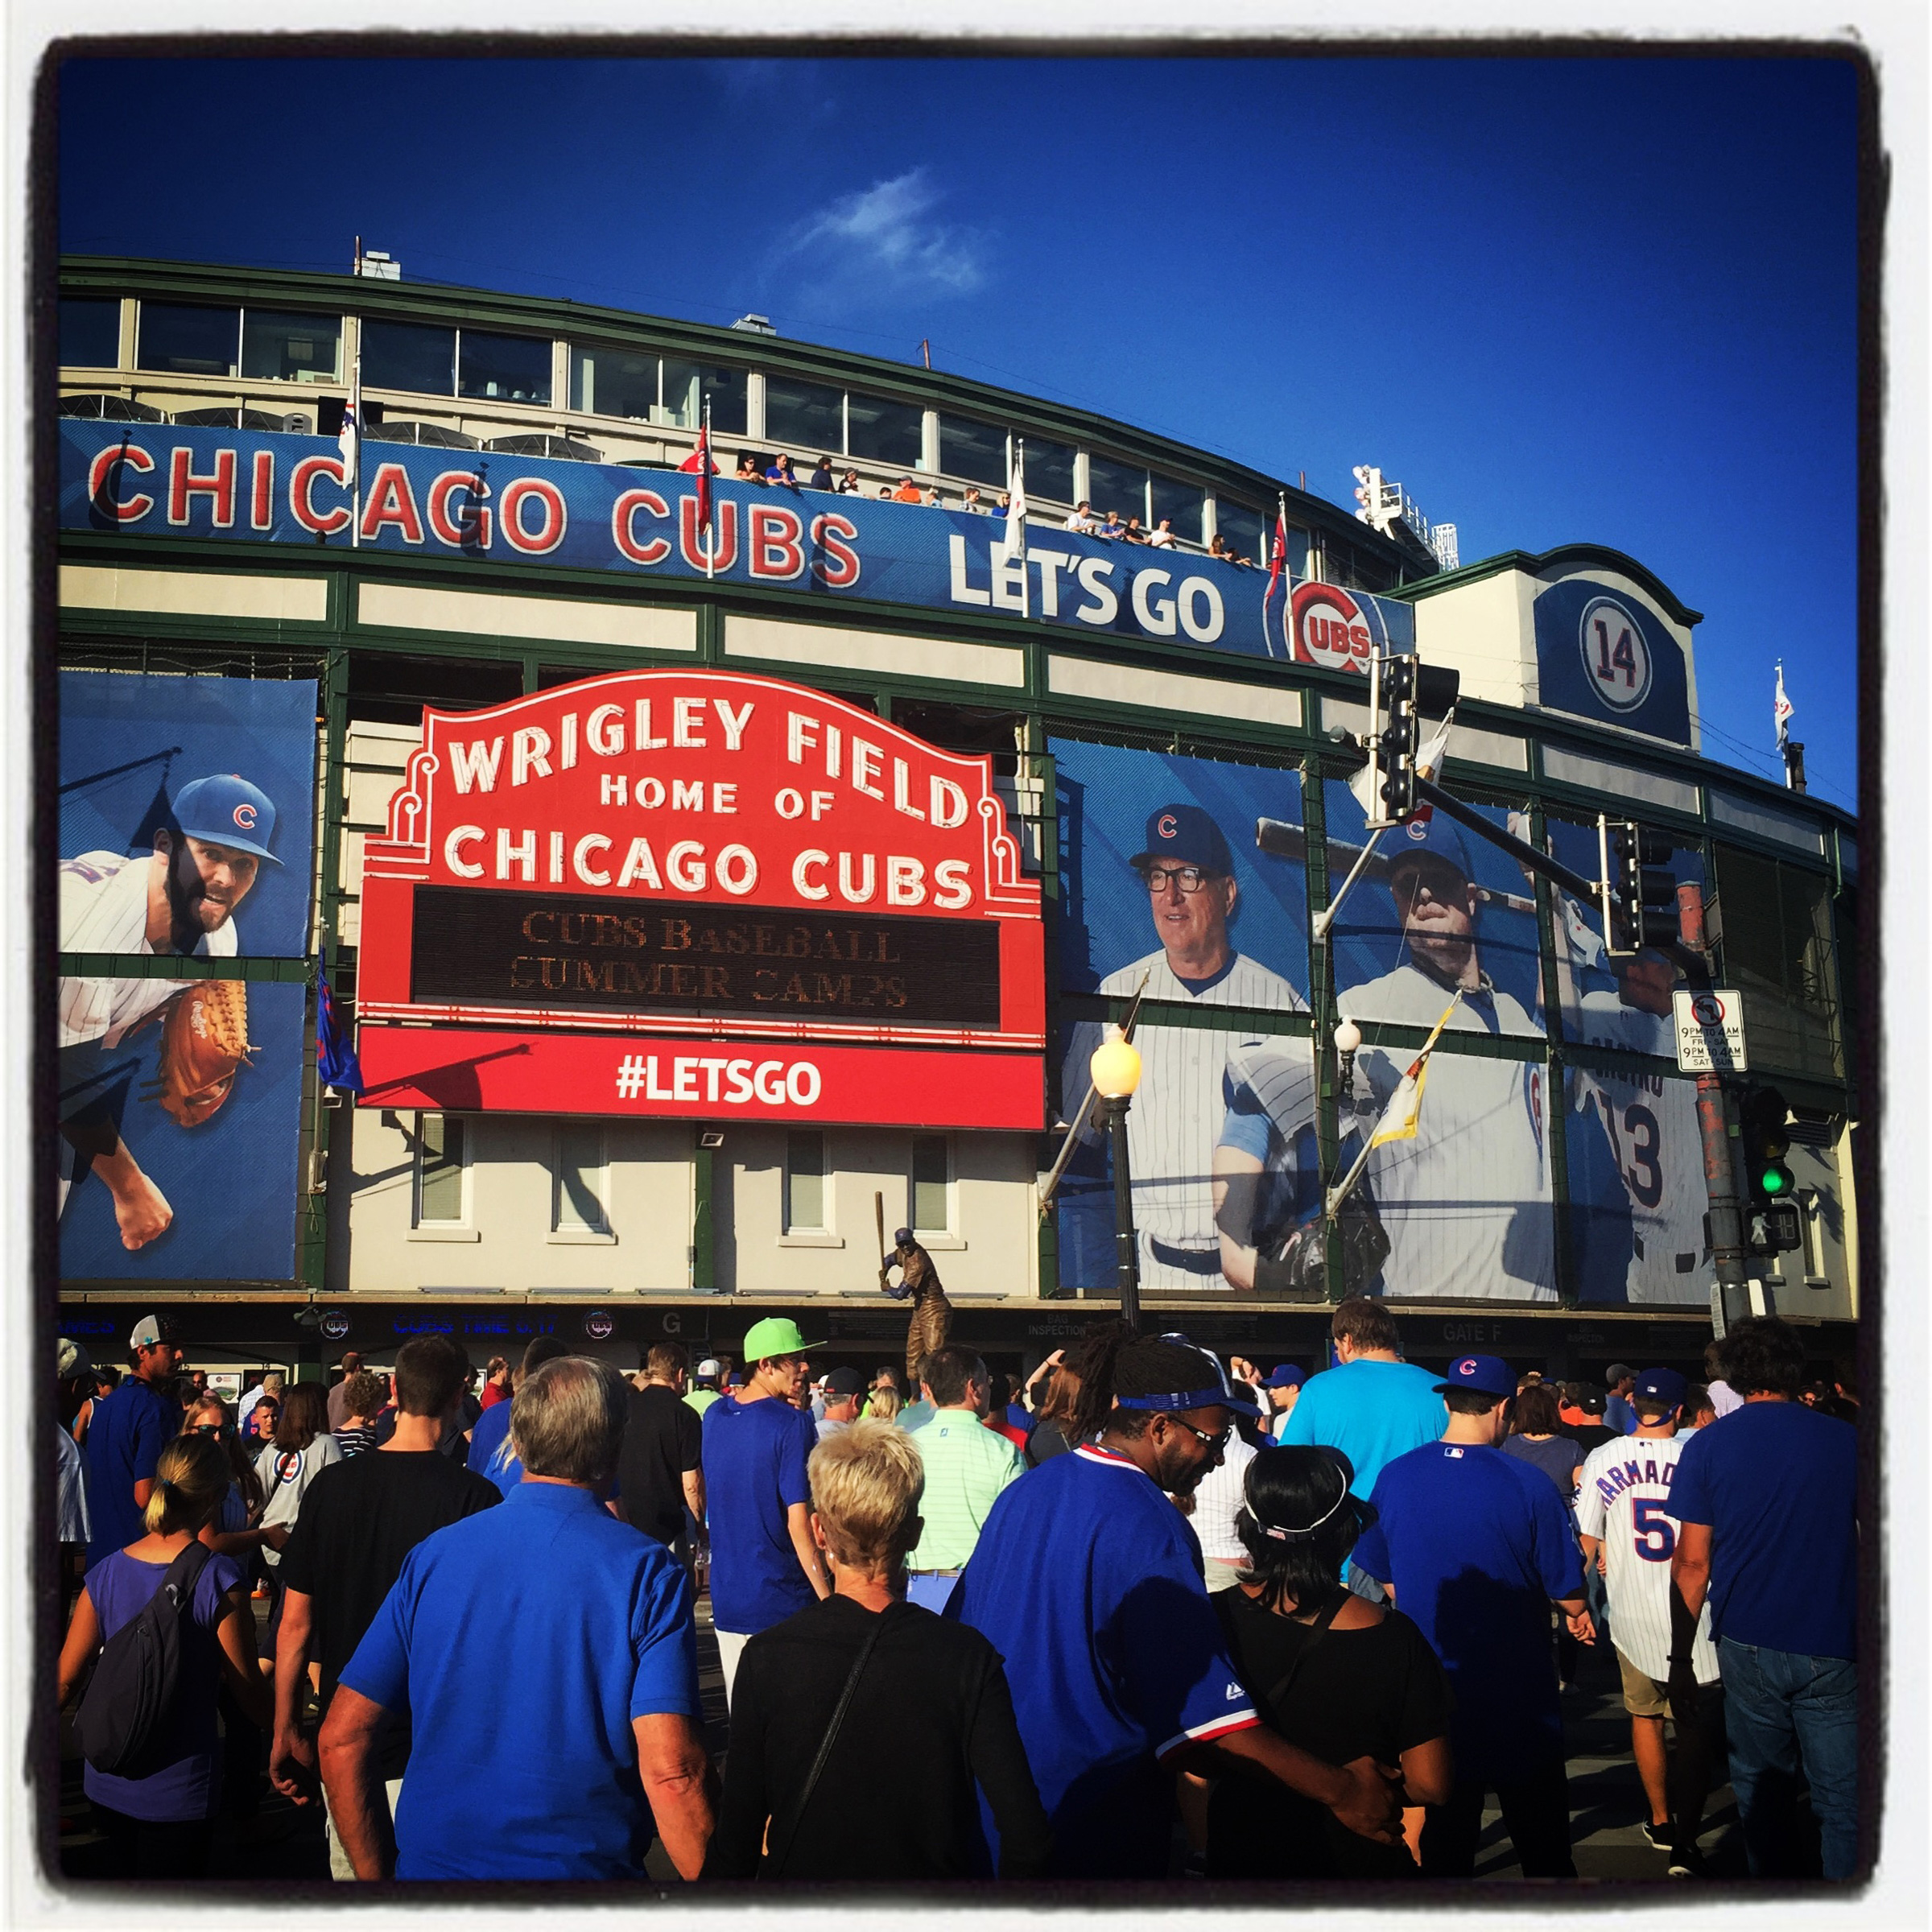 Fans pour into Wrigley Field before tonight's #sfgiants and #Cubs game in Chicago. #instantbaseball #iphone6plus